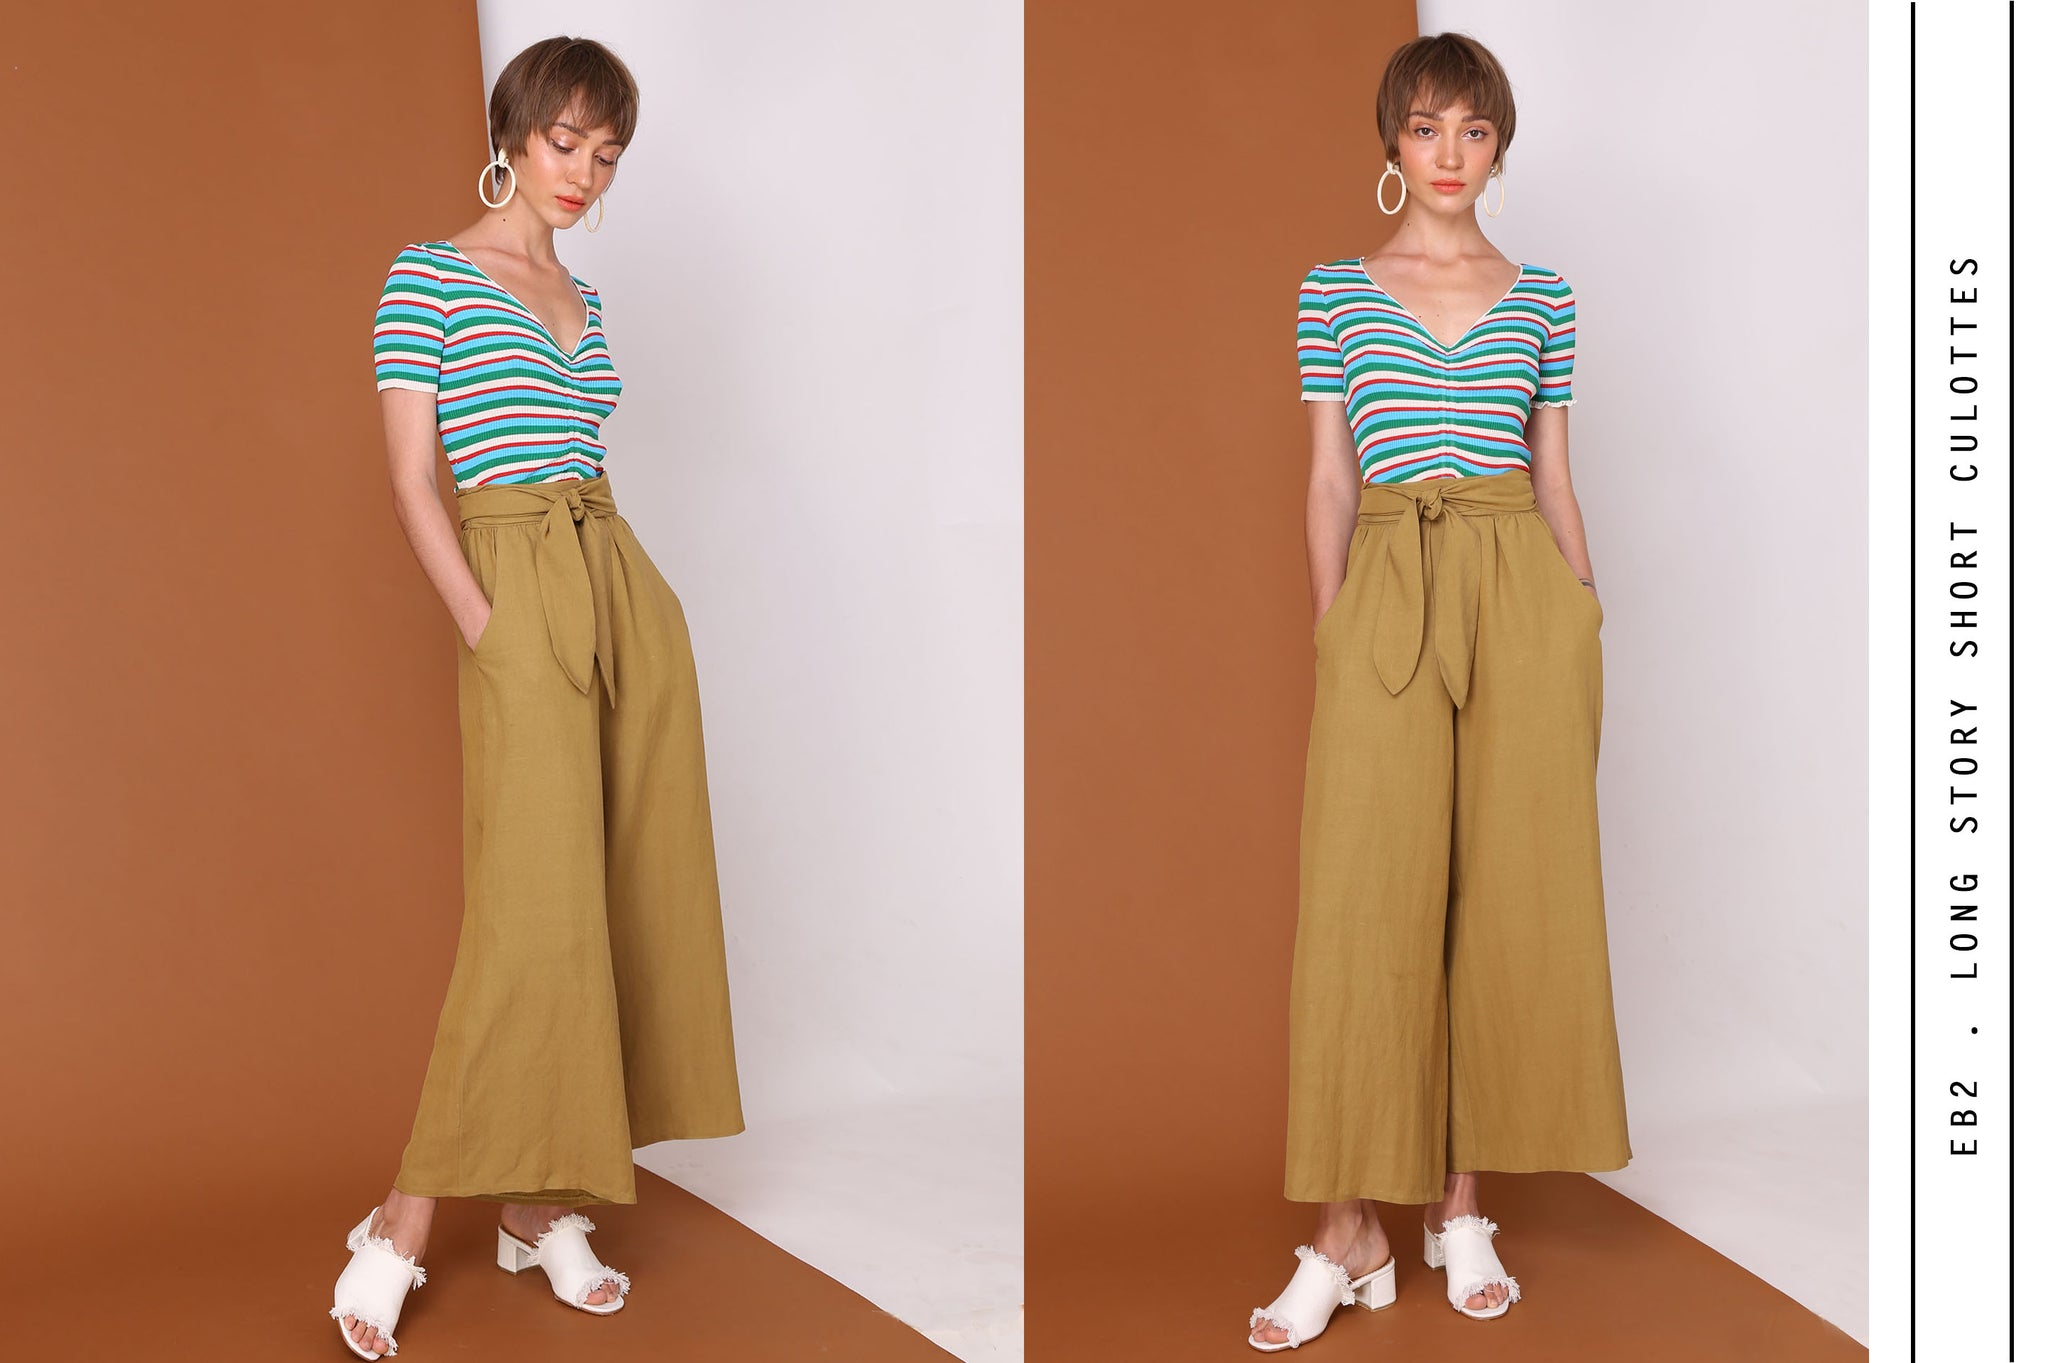 LONG STORY SHORTS High Waisted Linen Cotton Culottes In Olive Green